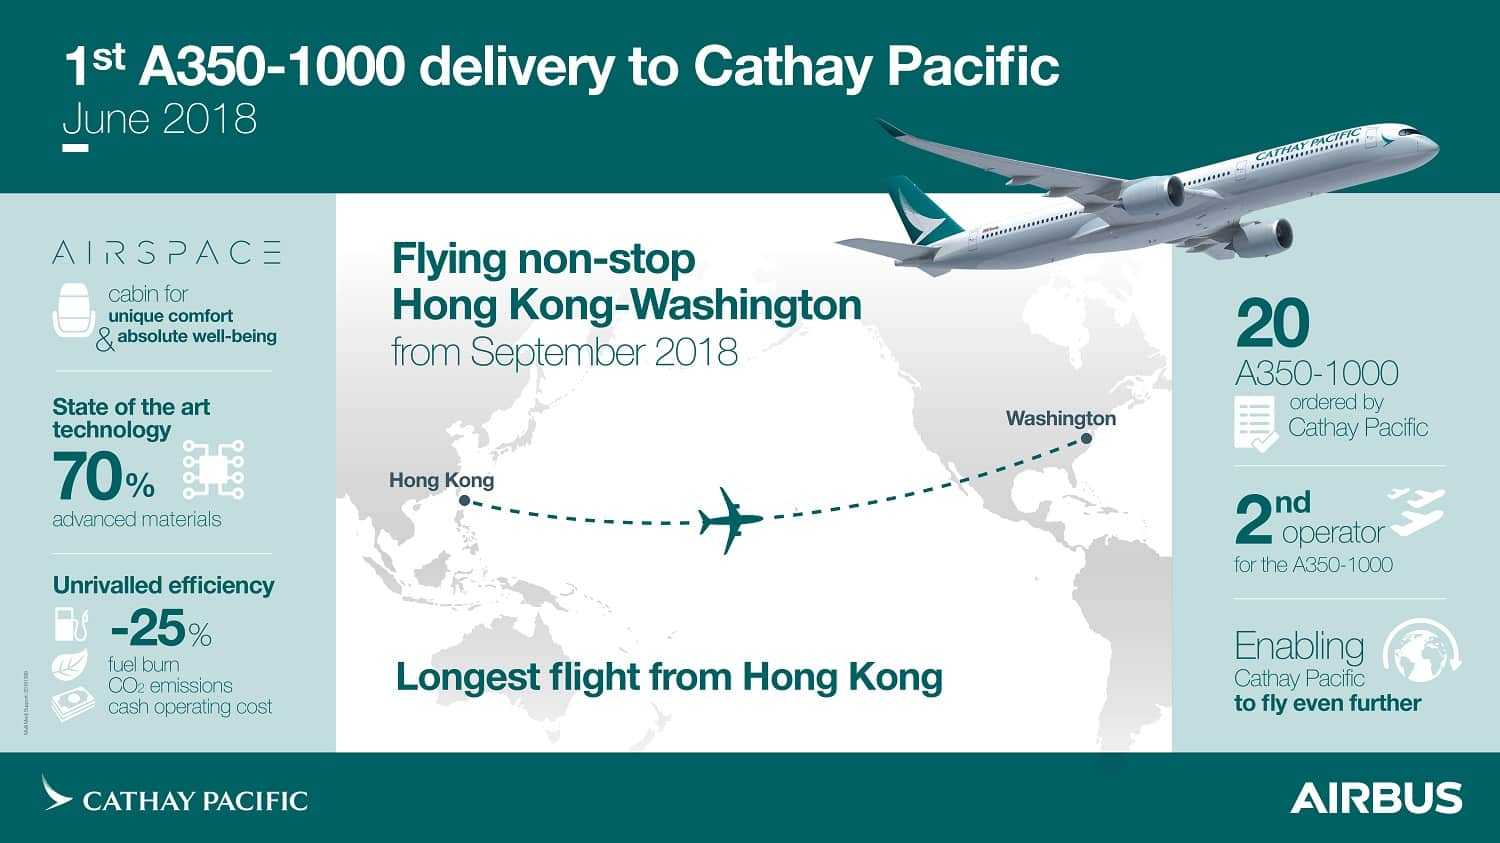 Delivery-A350-1000-CathayPacific-Infographic